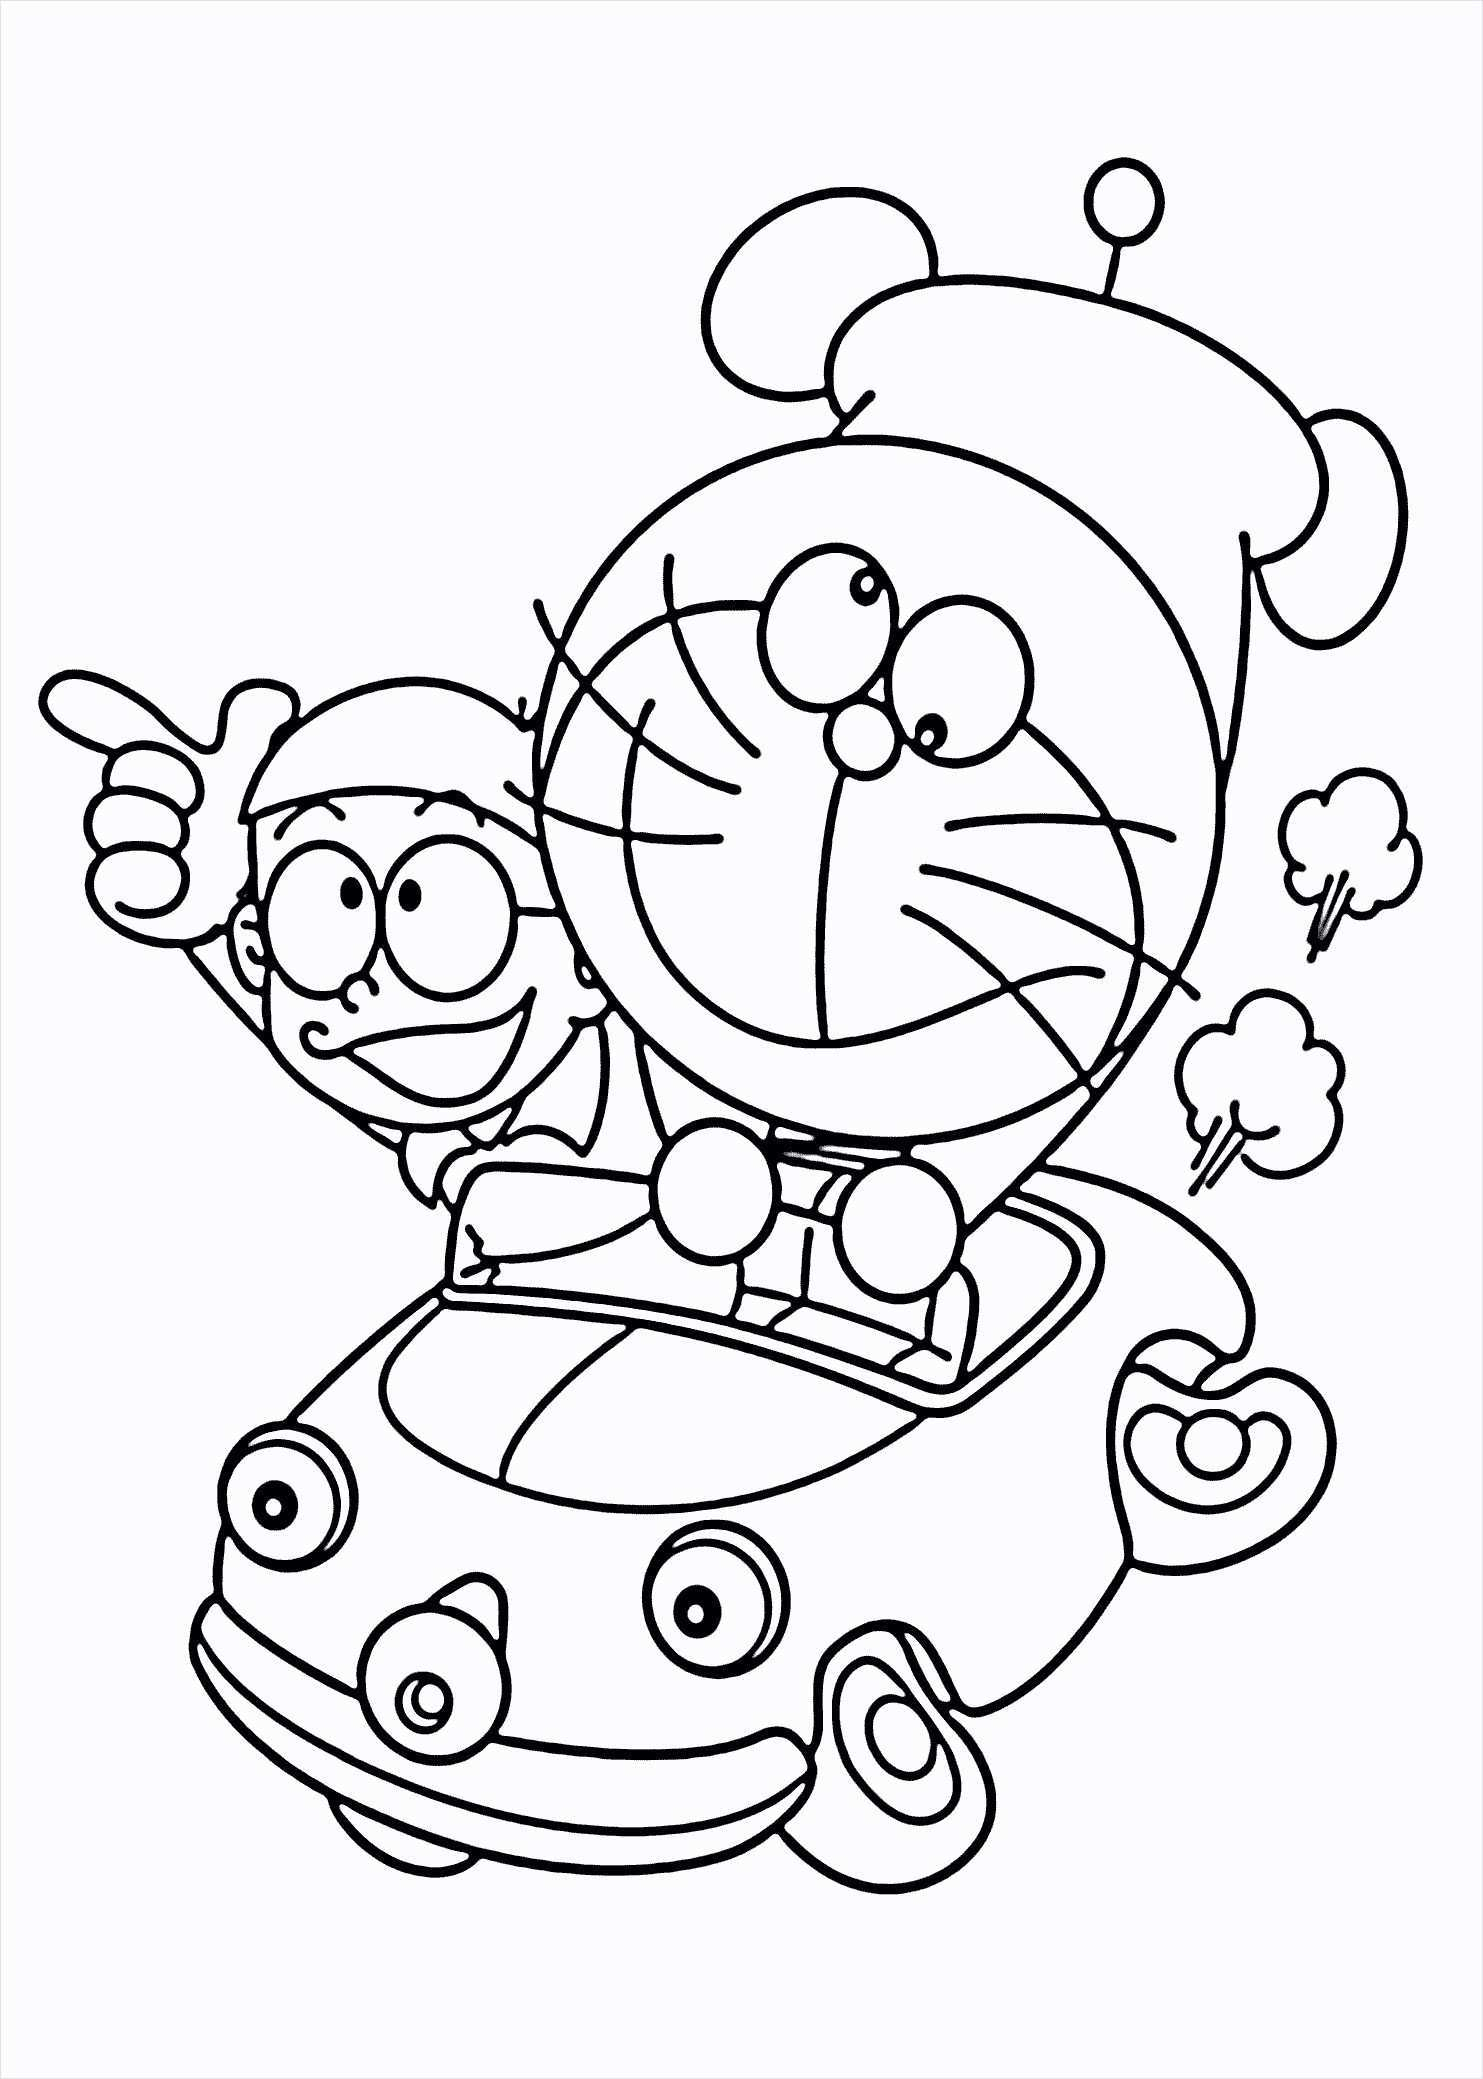 27 Excellent Picture Of Peppa Pig Printable Coloring